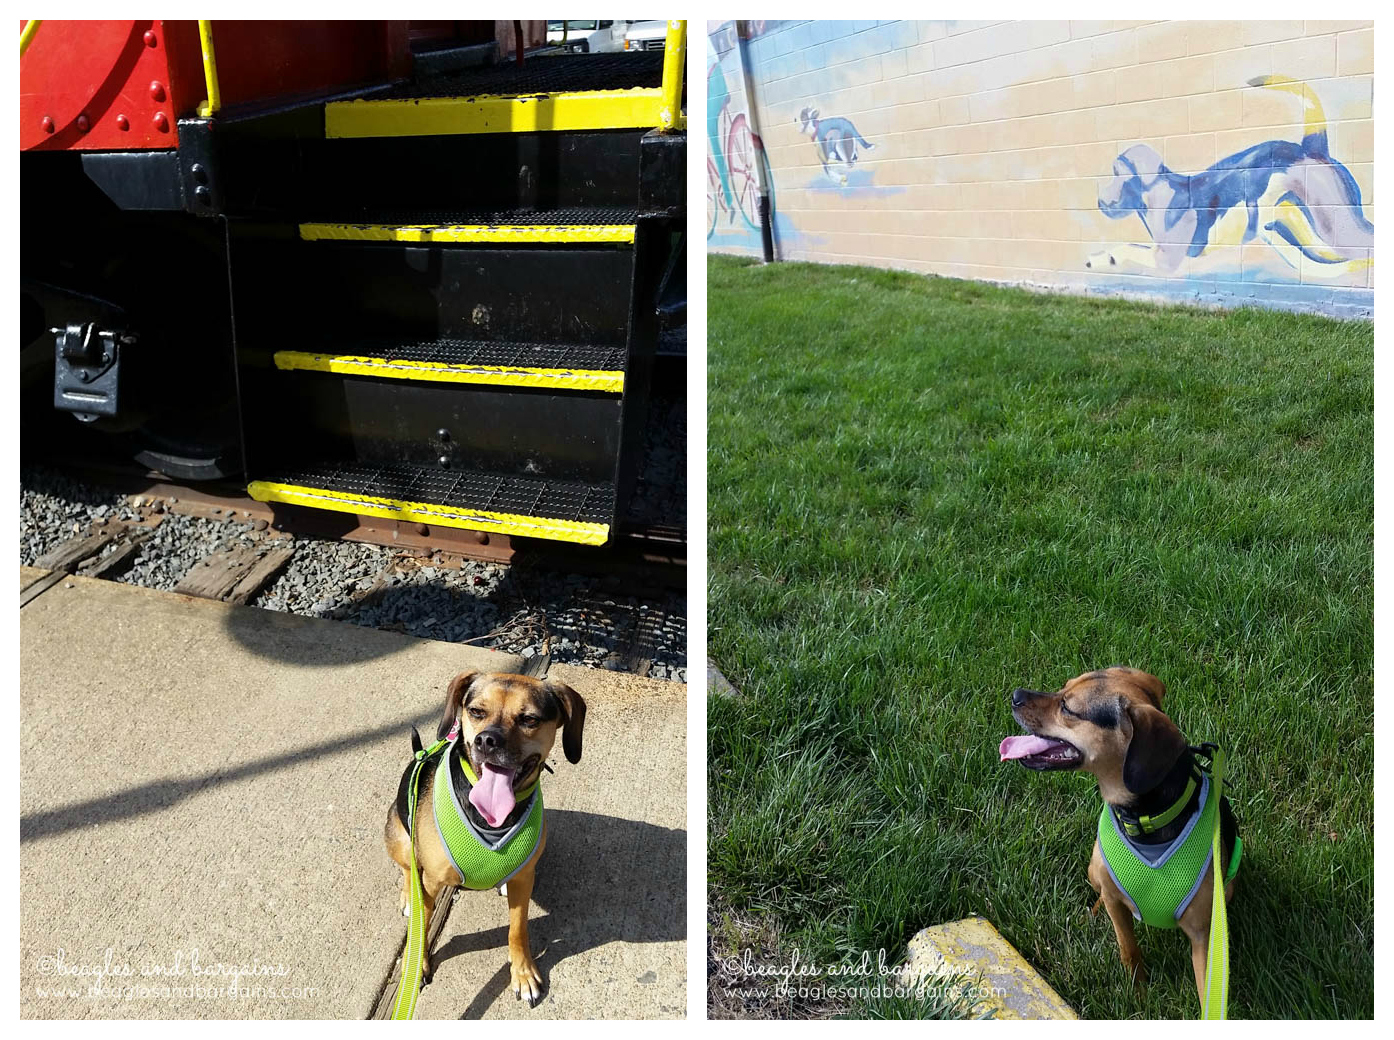 Saw some sights in Vienna, Virginia including a mural and train caboose!